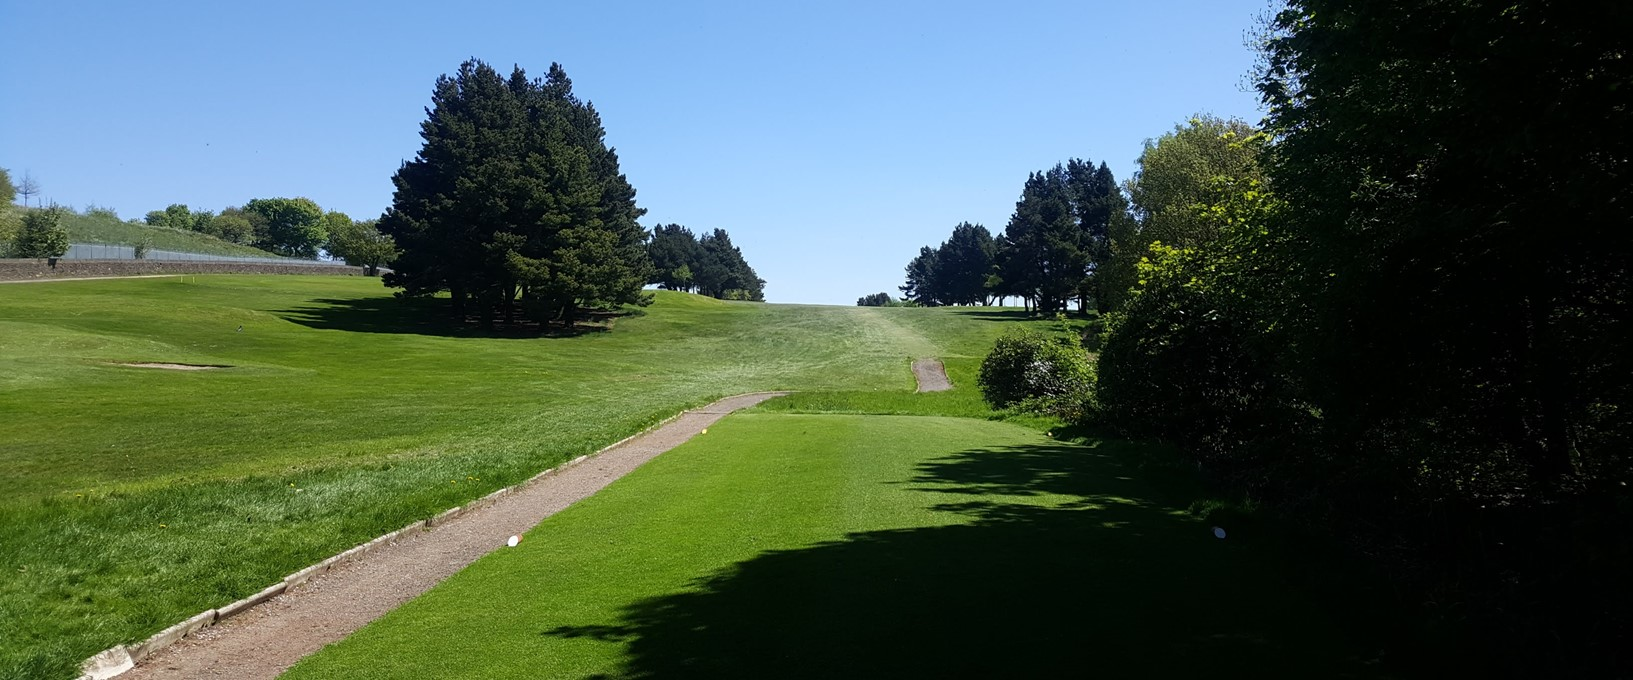 The 6th hole at West Bradford